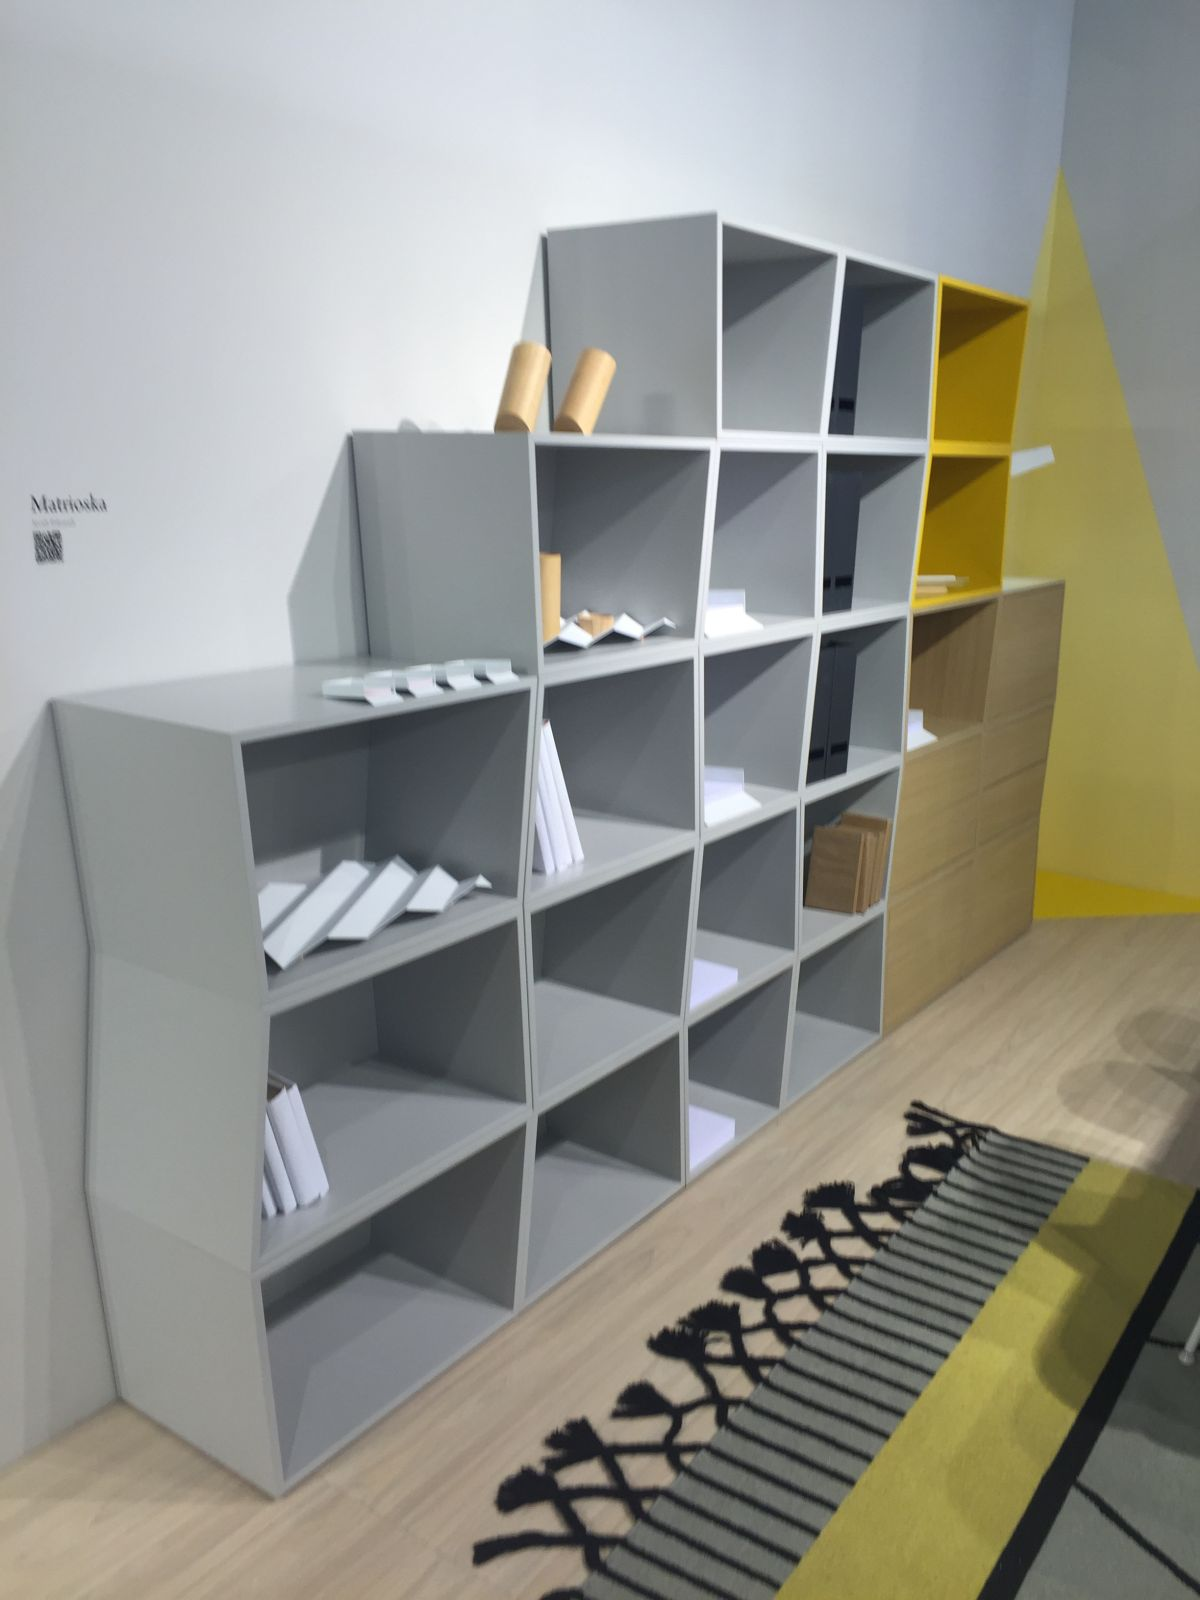 Different ways of shelving unit